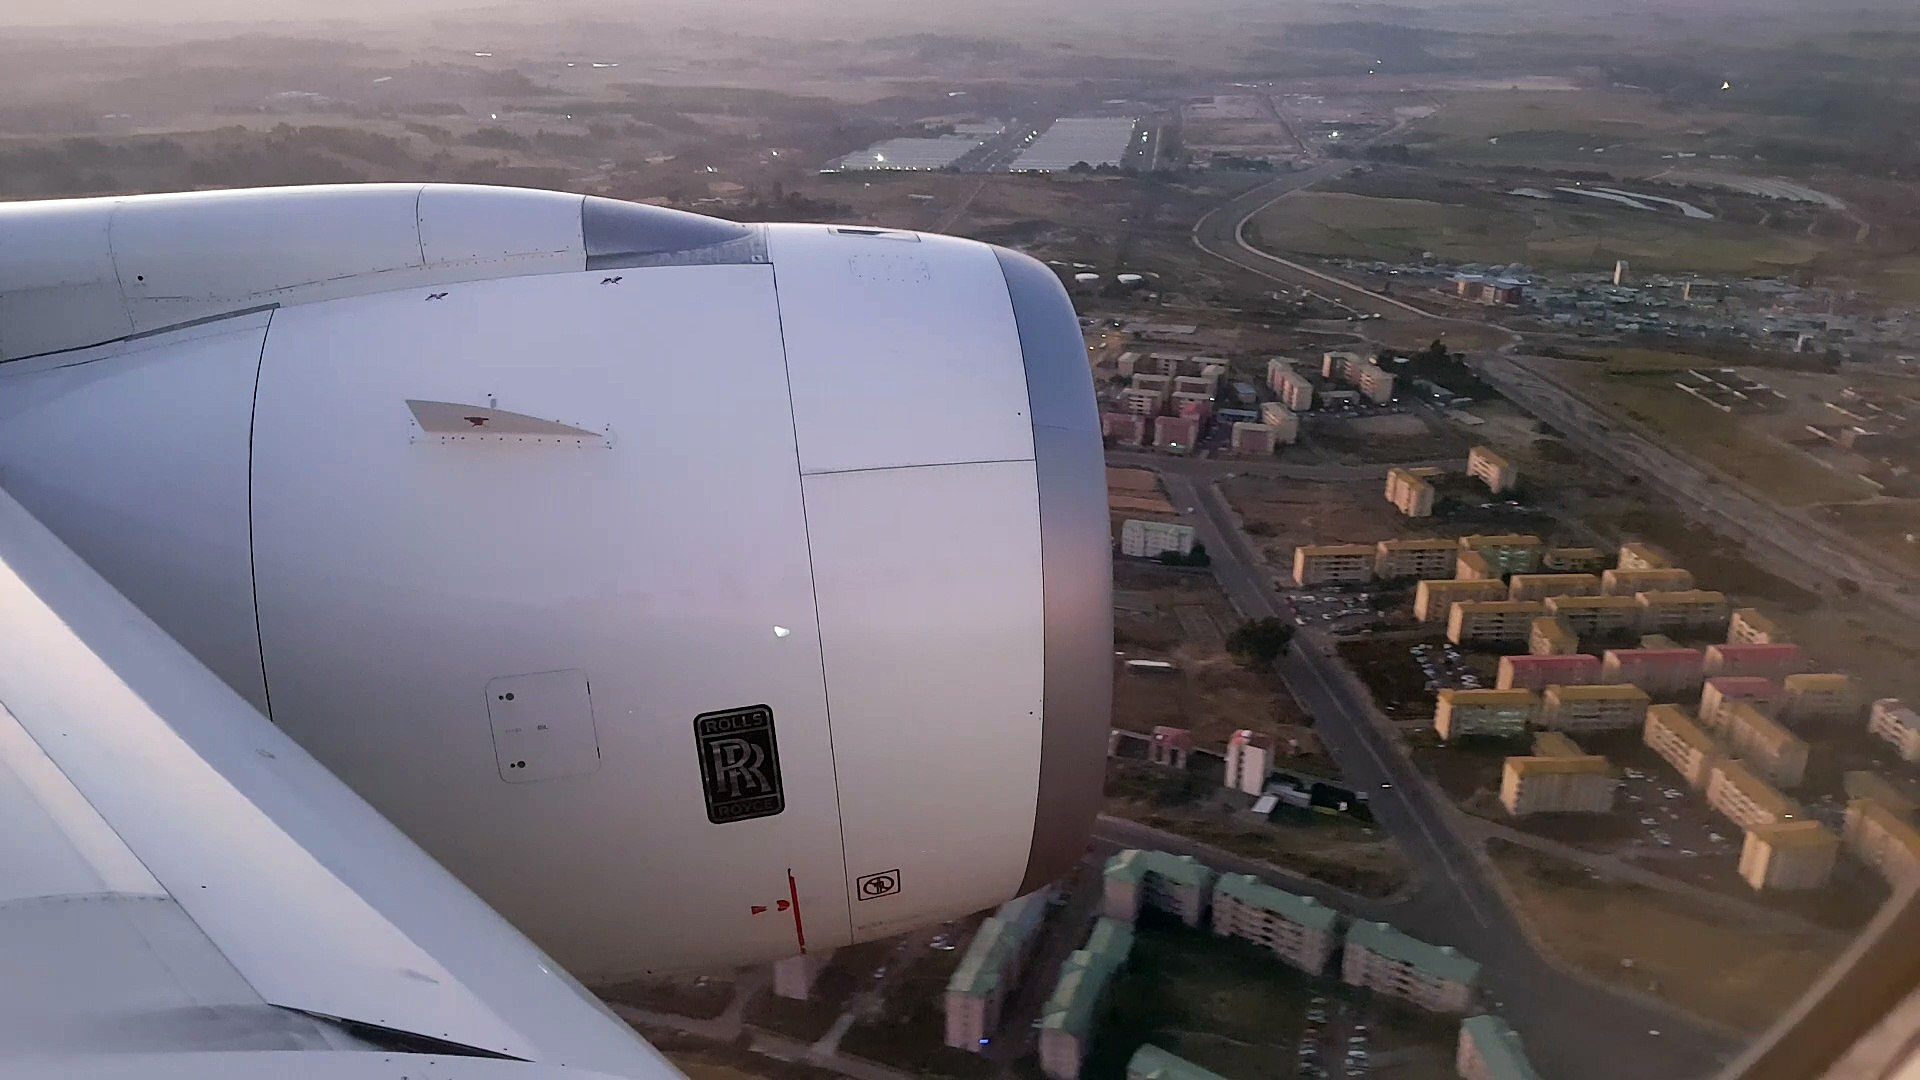 Landing at Addis Ababa - Ethiopian Airlines flight from Frankfurt to Addis Ababa - Airbus A350-900